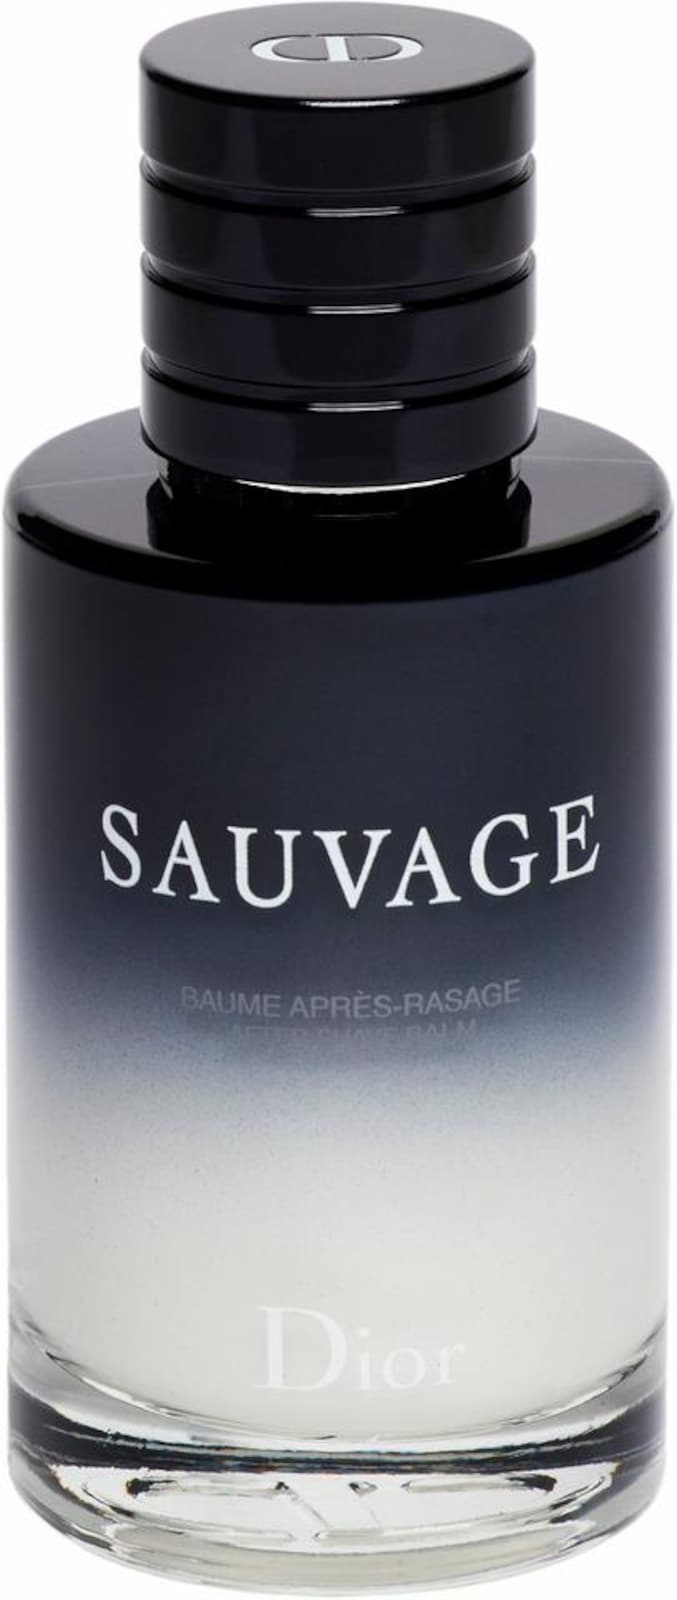 Dior ´Sauvage´ Aftershave Balm